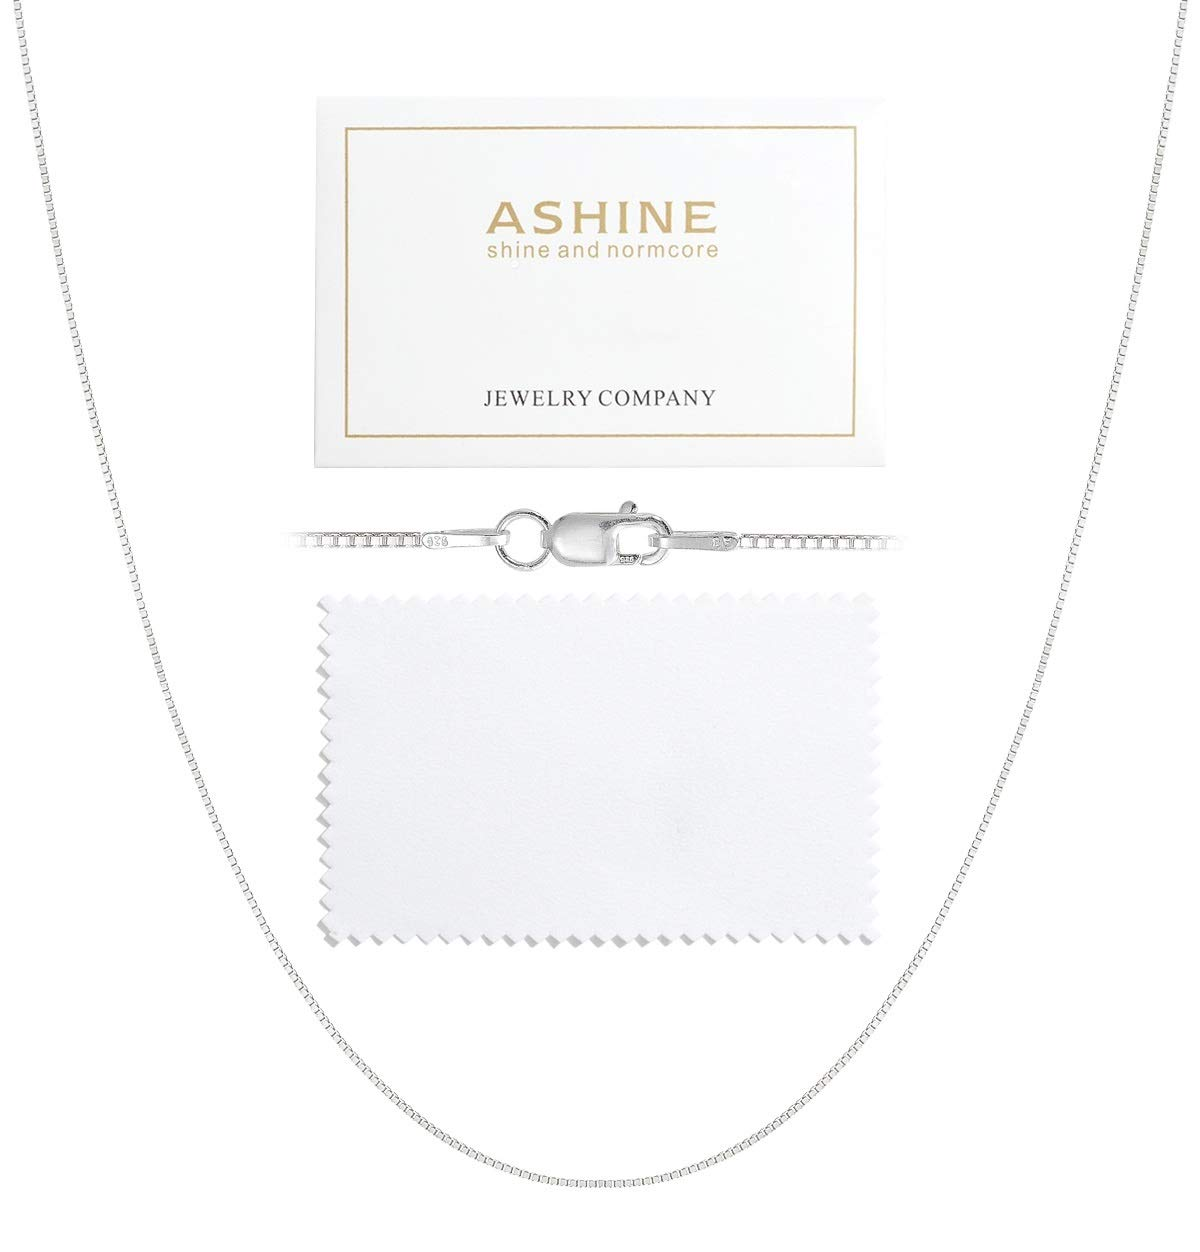 ASHINE 26 Inches 925 Sterling Silver 1mm Box Chain Necklace Solid Nickle-Free Necklace for Women Lobster Clasp Chain Italian Crafted Necklace with Silver Polishing Cloth